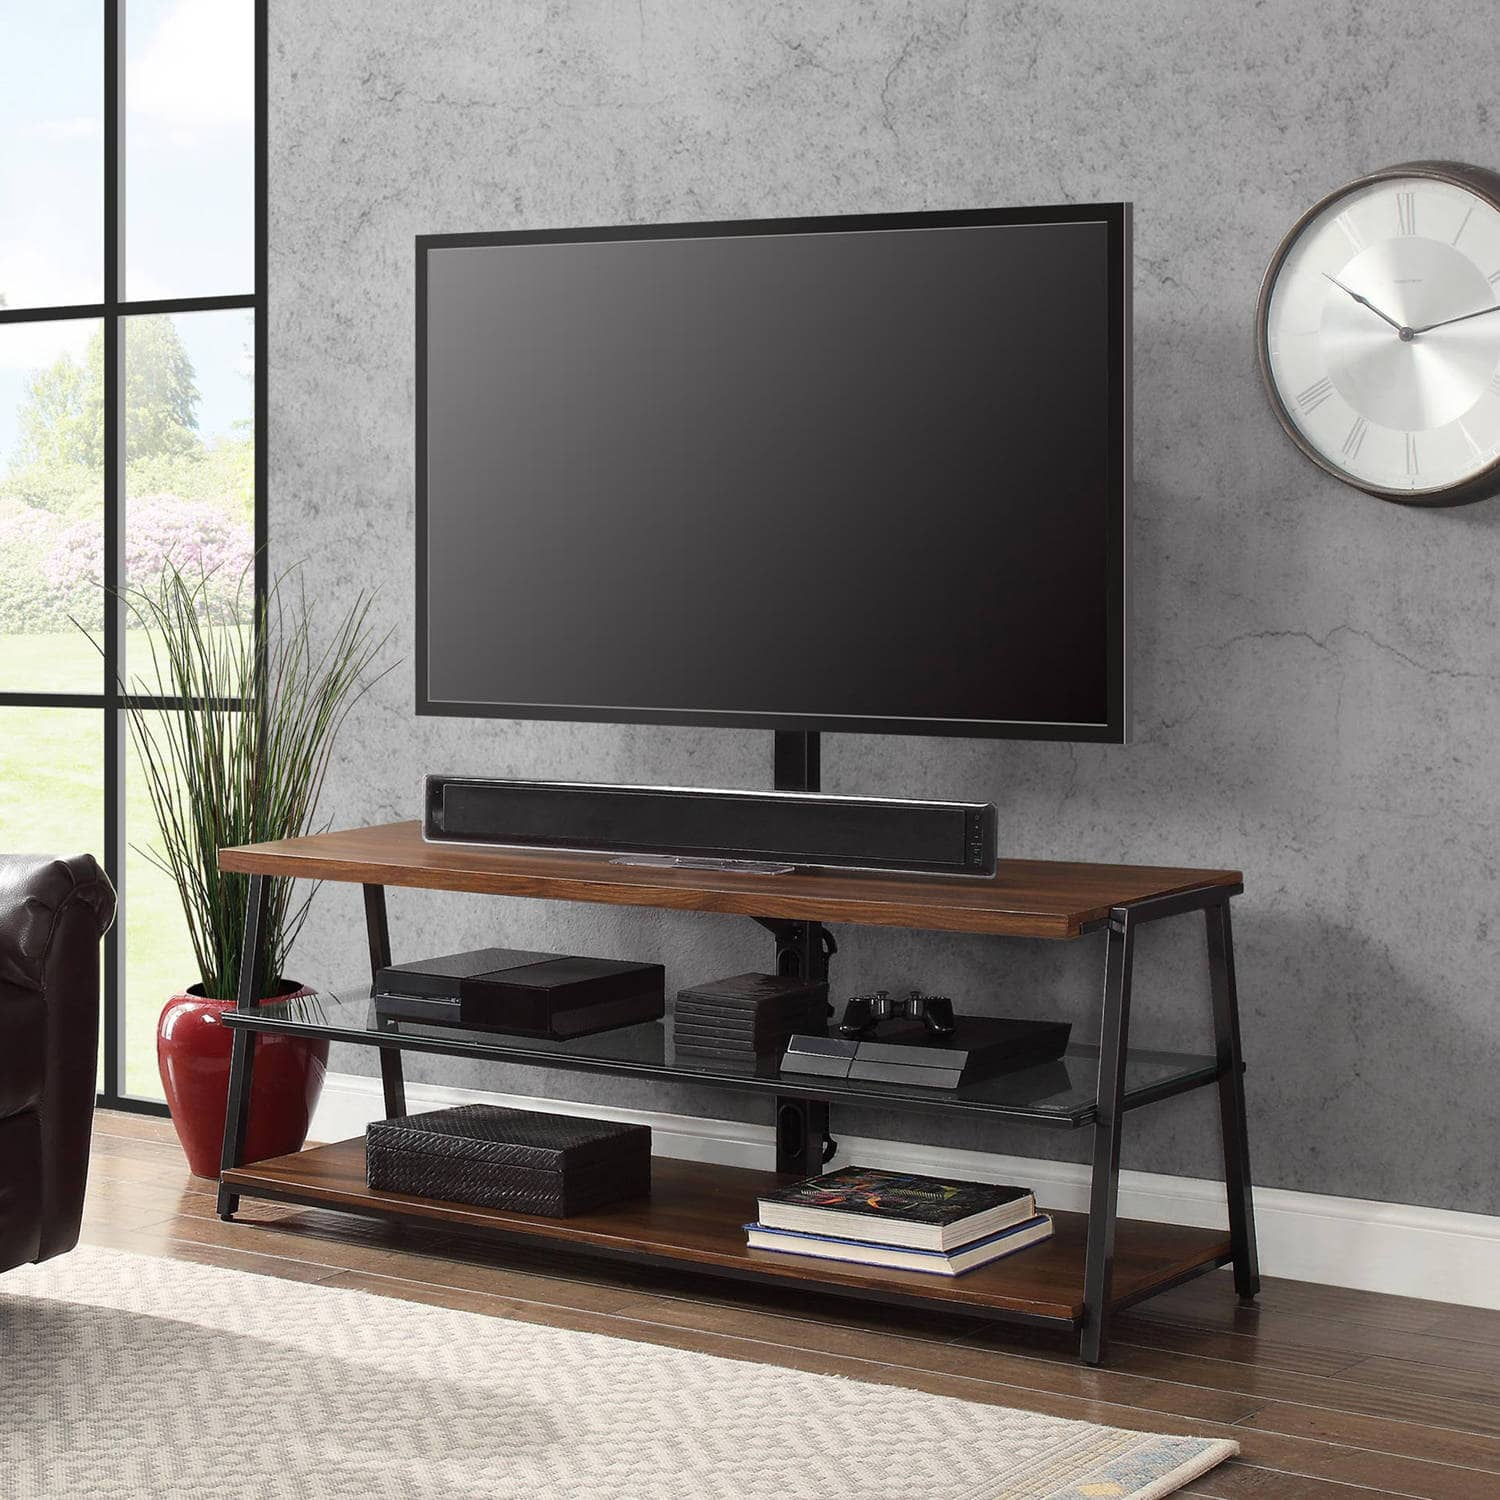 "Mainstays 3 in1 TV Stand for TVs up to 70"" Medium Brown"